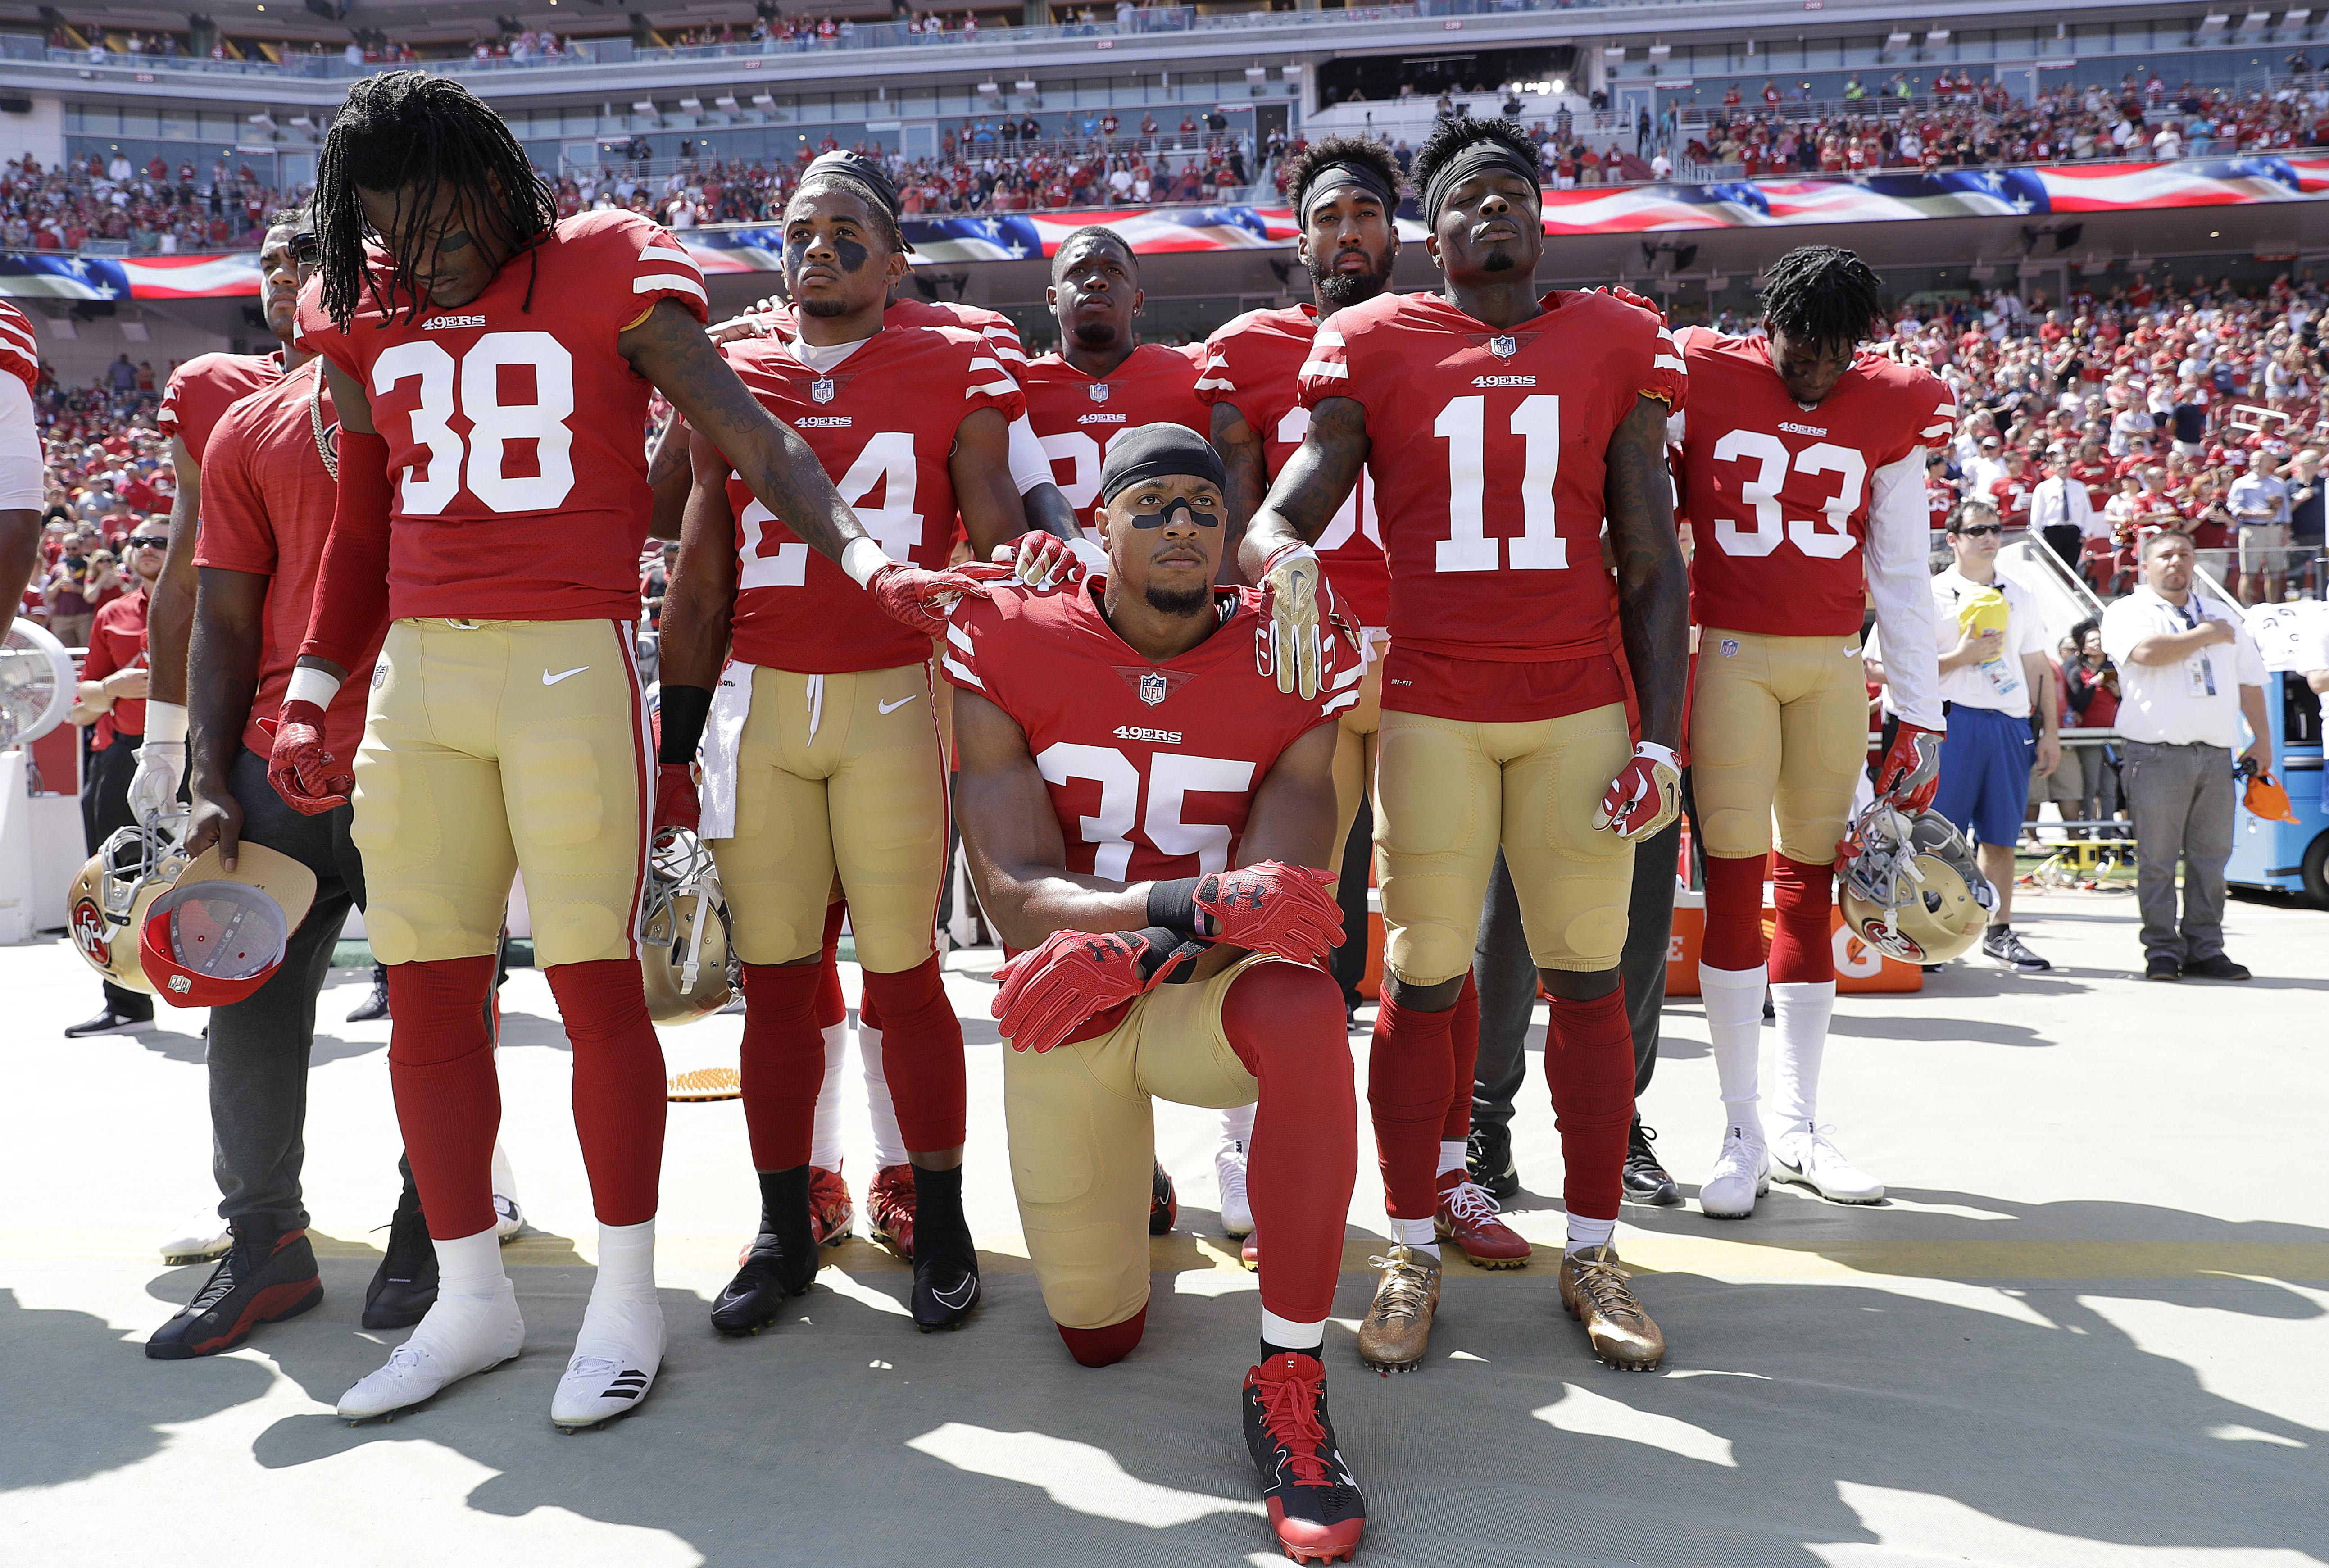 Reid had been a free agent for six months since leaving the San Francisco 49ers